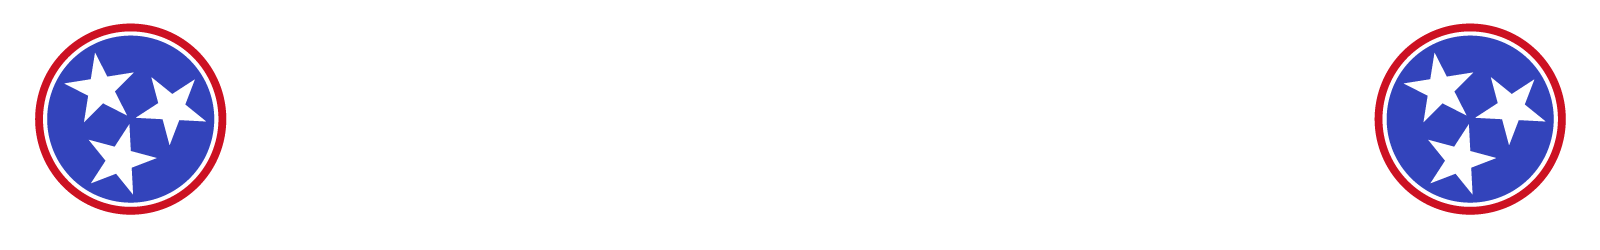 Tennessee Auto Salvage & Recycling, Inc.